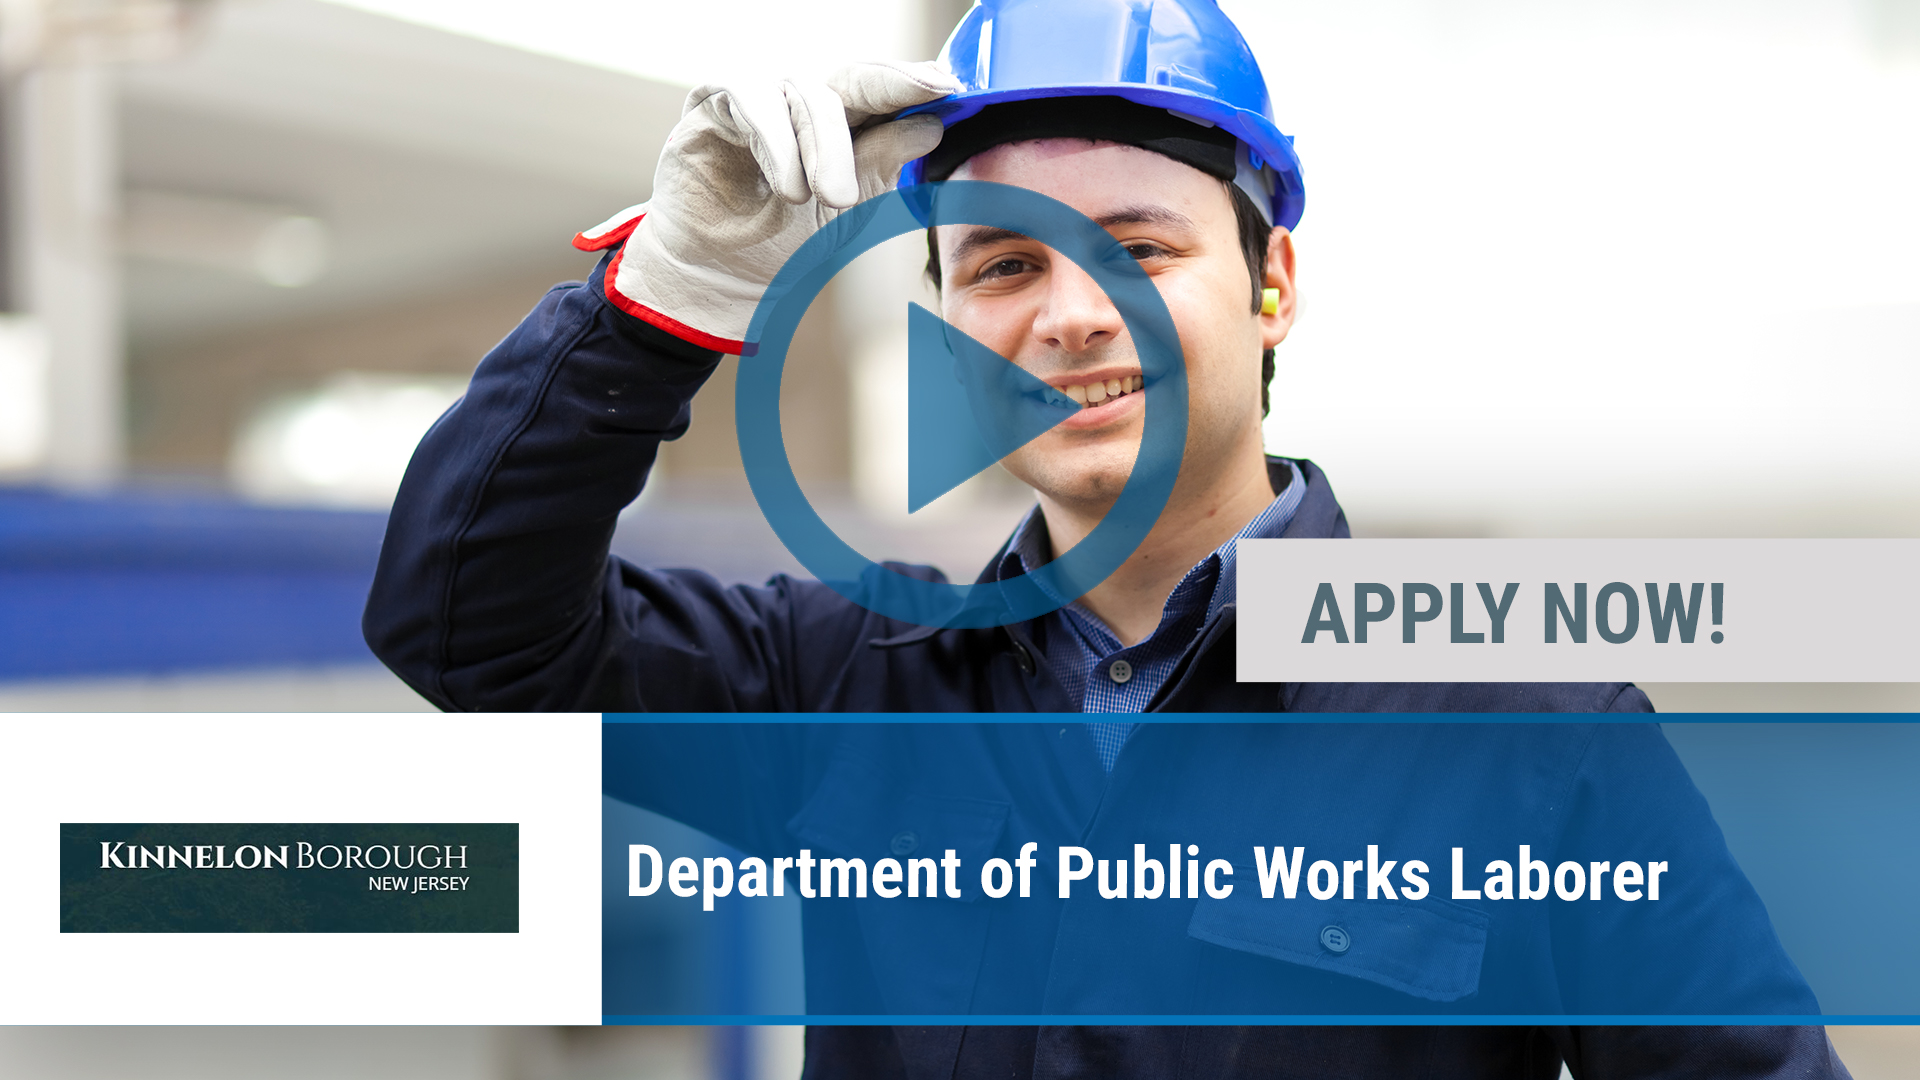 Watch our careers video for available job opening Department of Public Works Laborer in Kinnelon, NJ